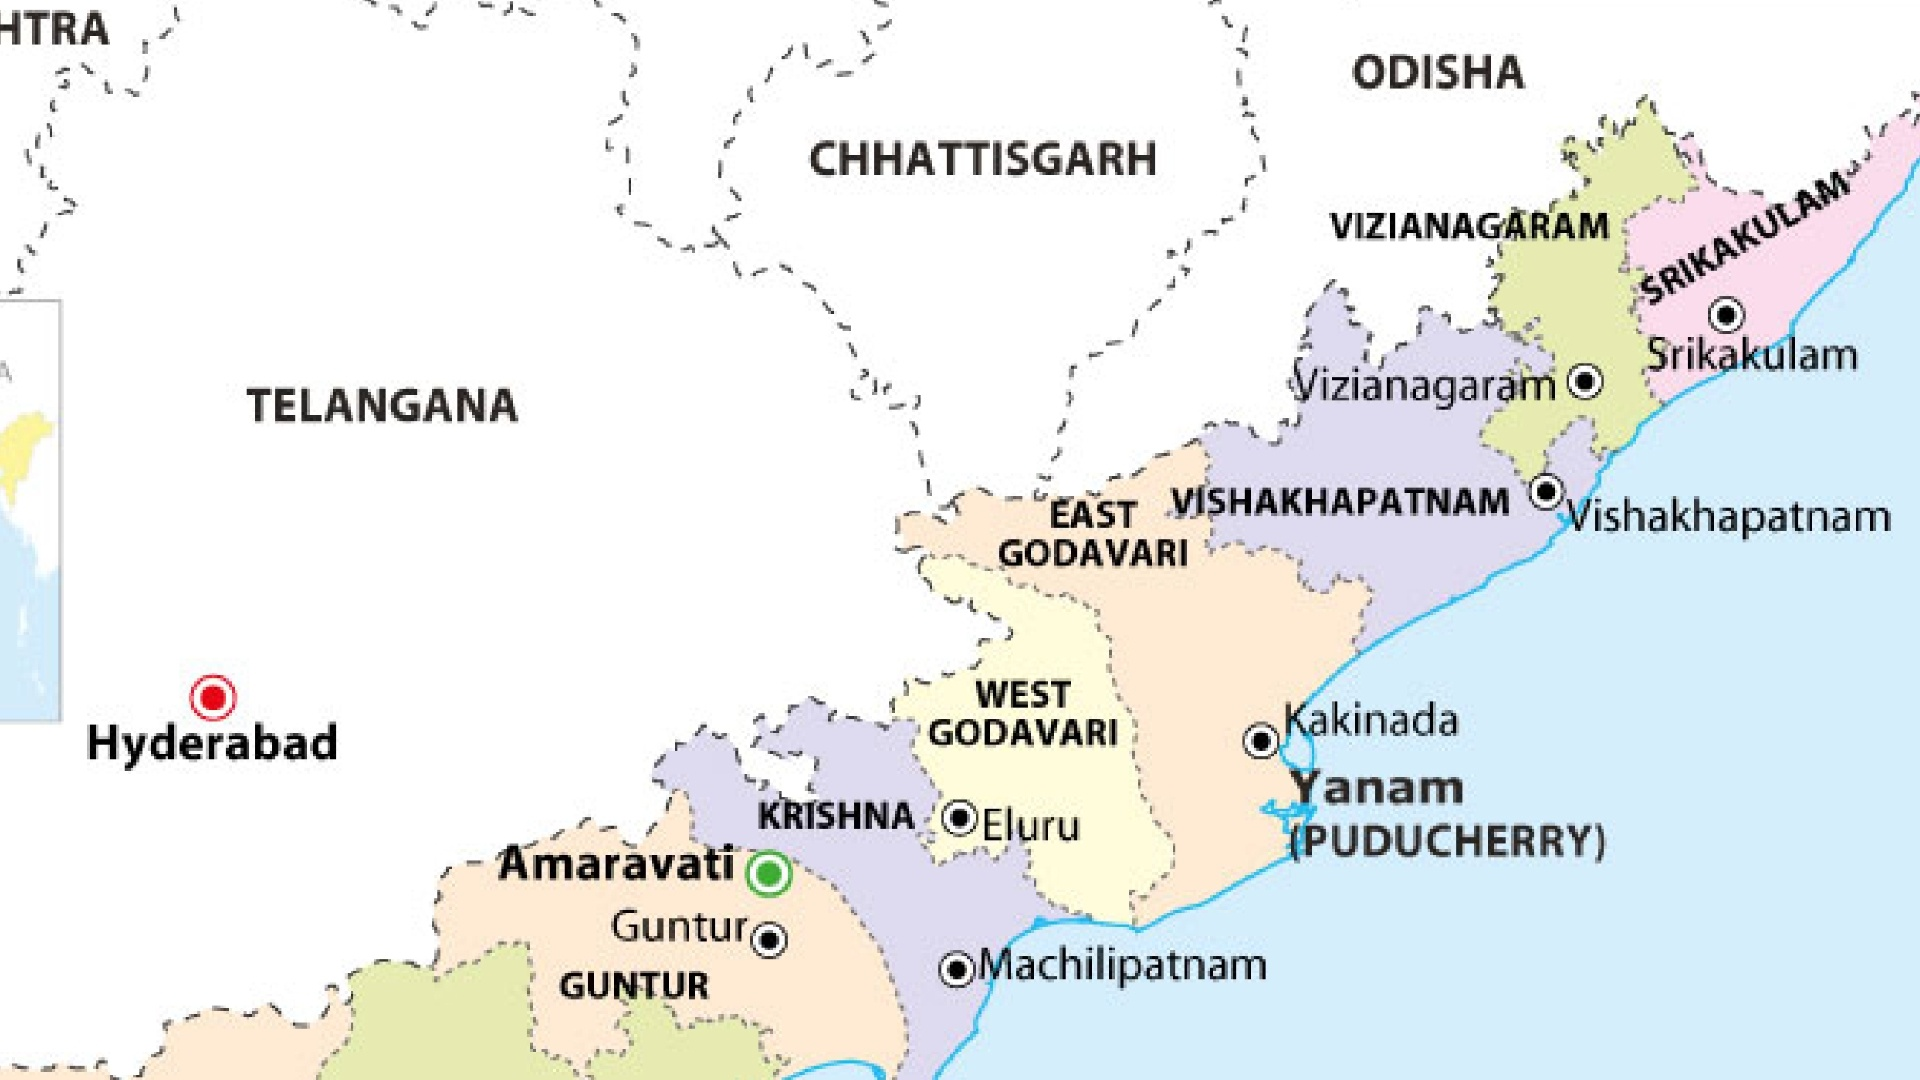 Does Andhra Pradesh share a border with Chhattisgarh? - Quora